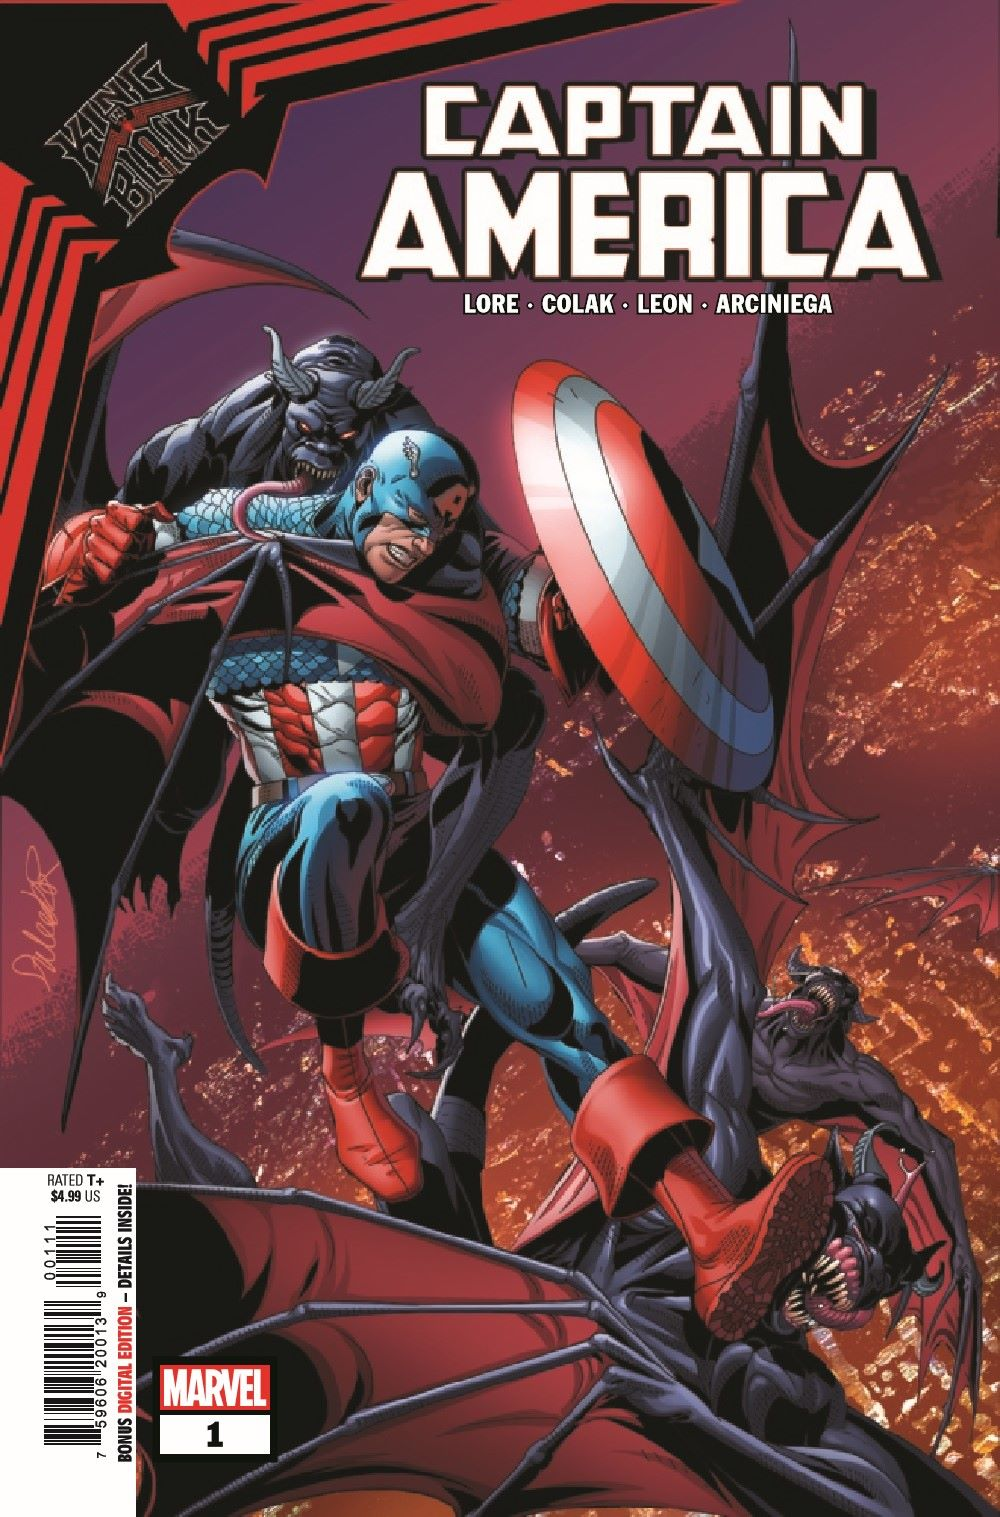 CAPAKIB2021001_Preview-1 ComicList Previews: KING IN BLACK CAPTAIN AMERICA #1